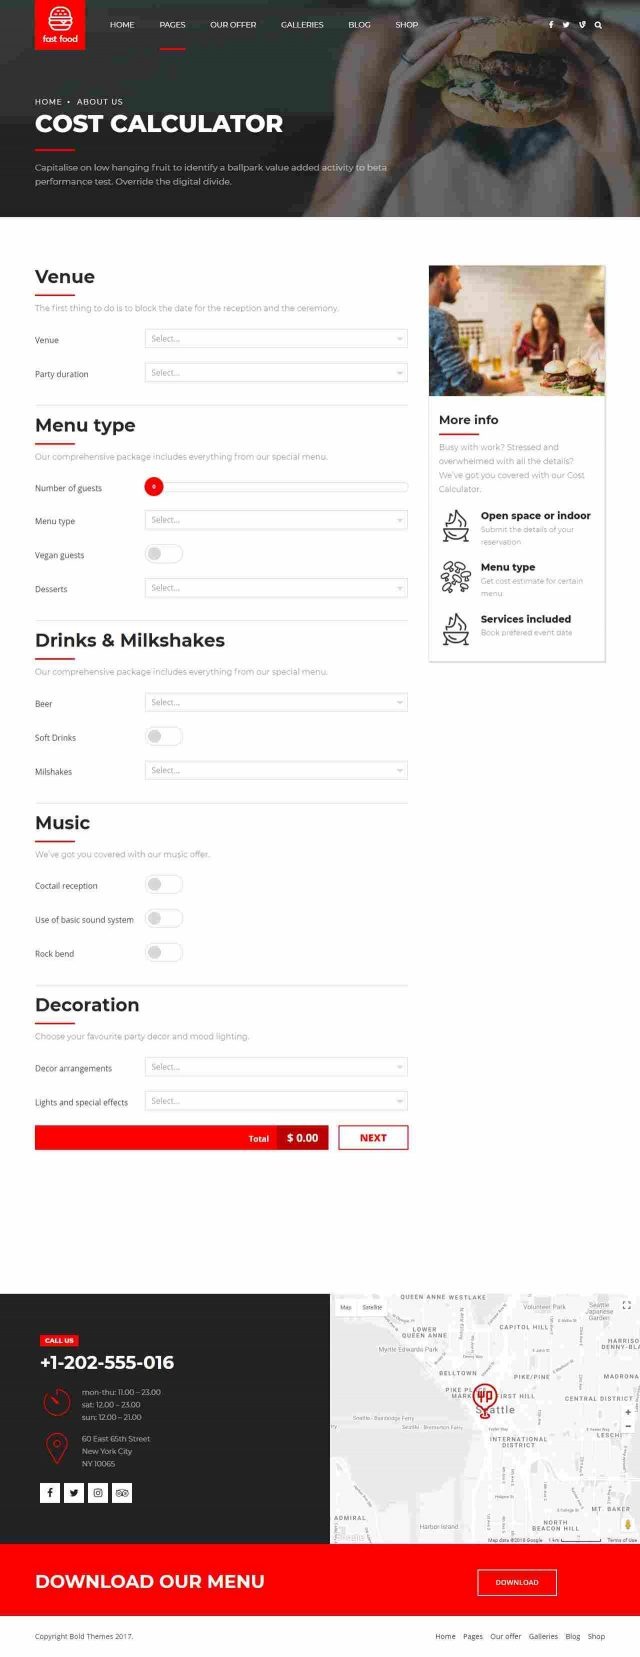 http://cost-calculator.bold-themes.com/new-main-demo/wp-content/uploads/sites/2/2018/04/fast-food-640x1657.jpg